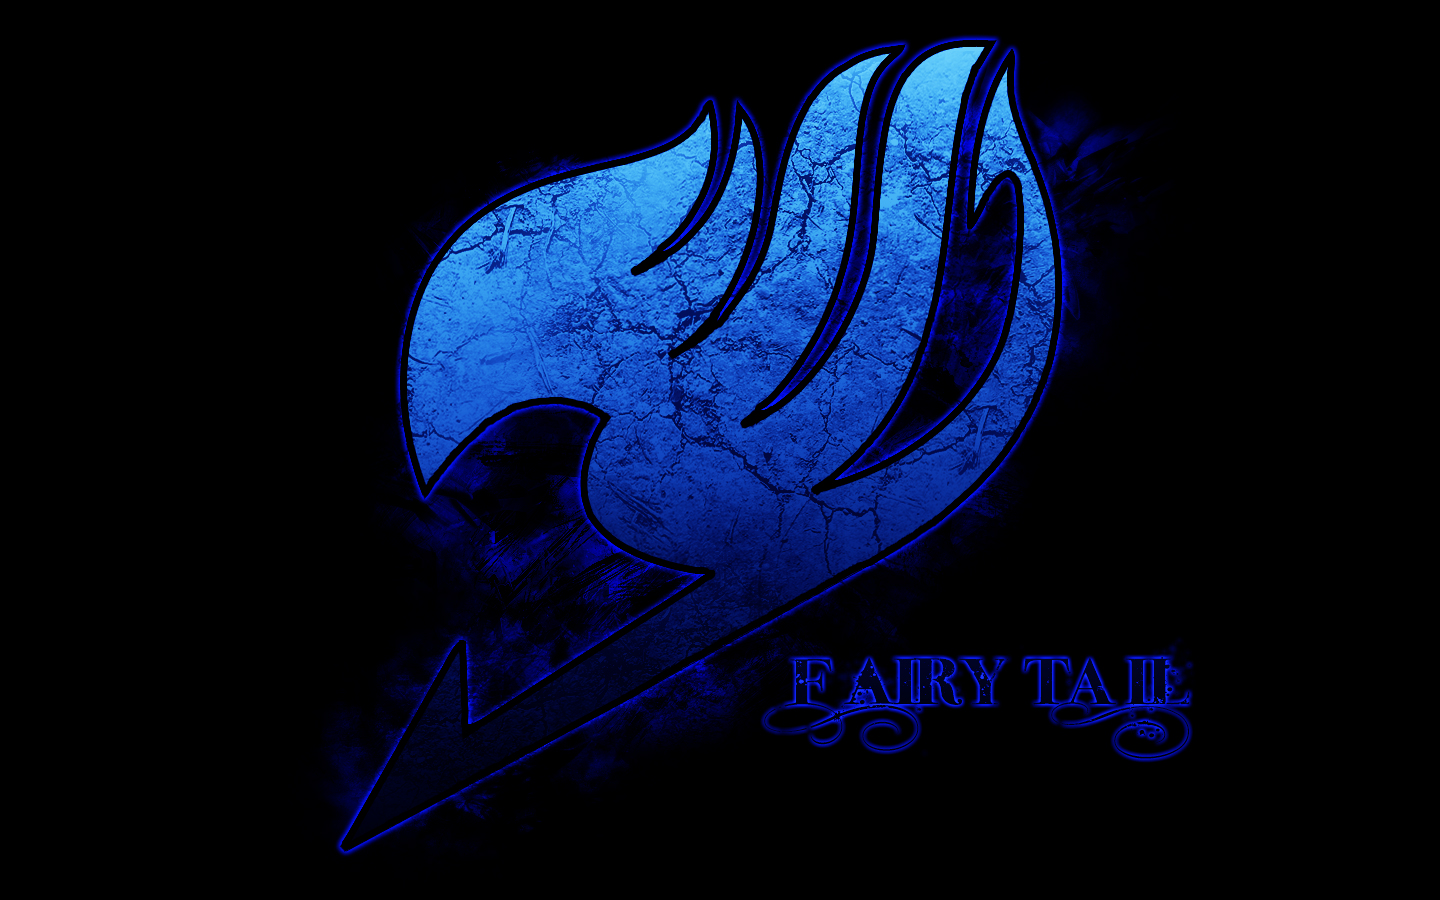 Download Anime Fairy Tail Wallpaper Wallpaper Full HD Wallpapers 1440x900